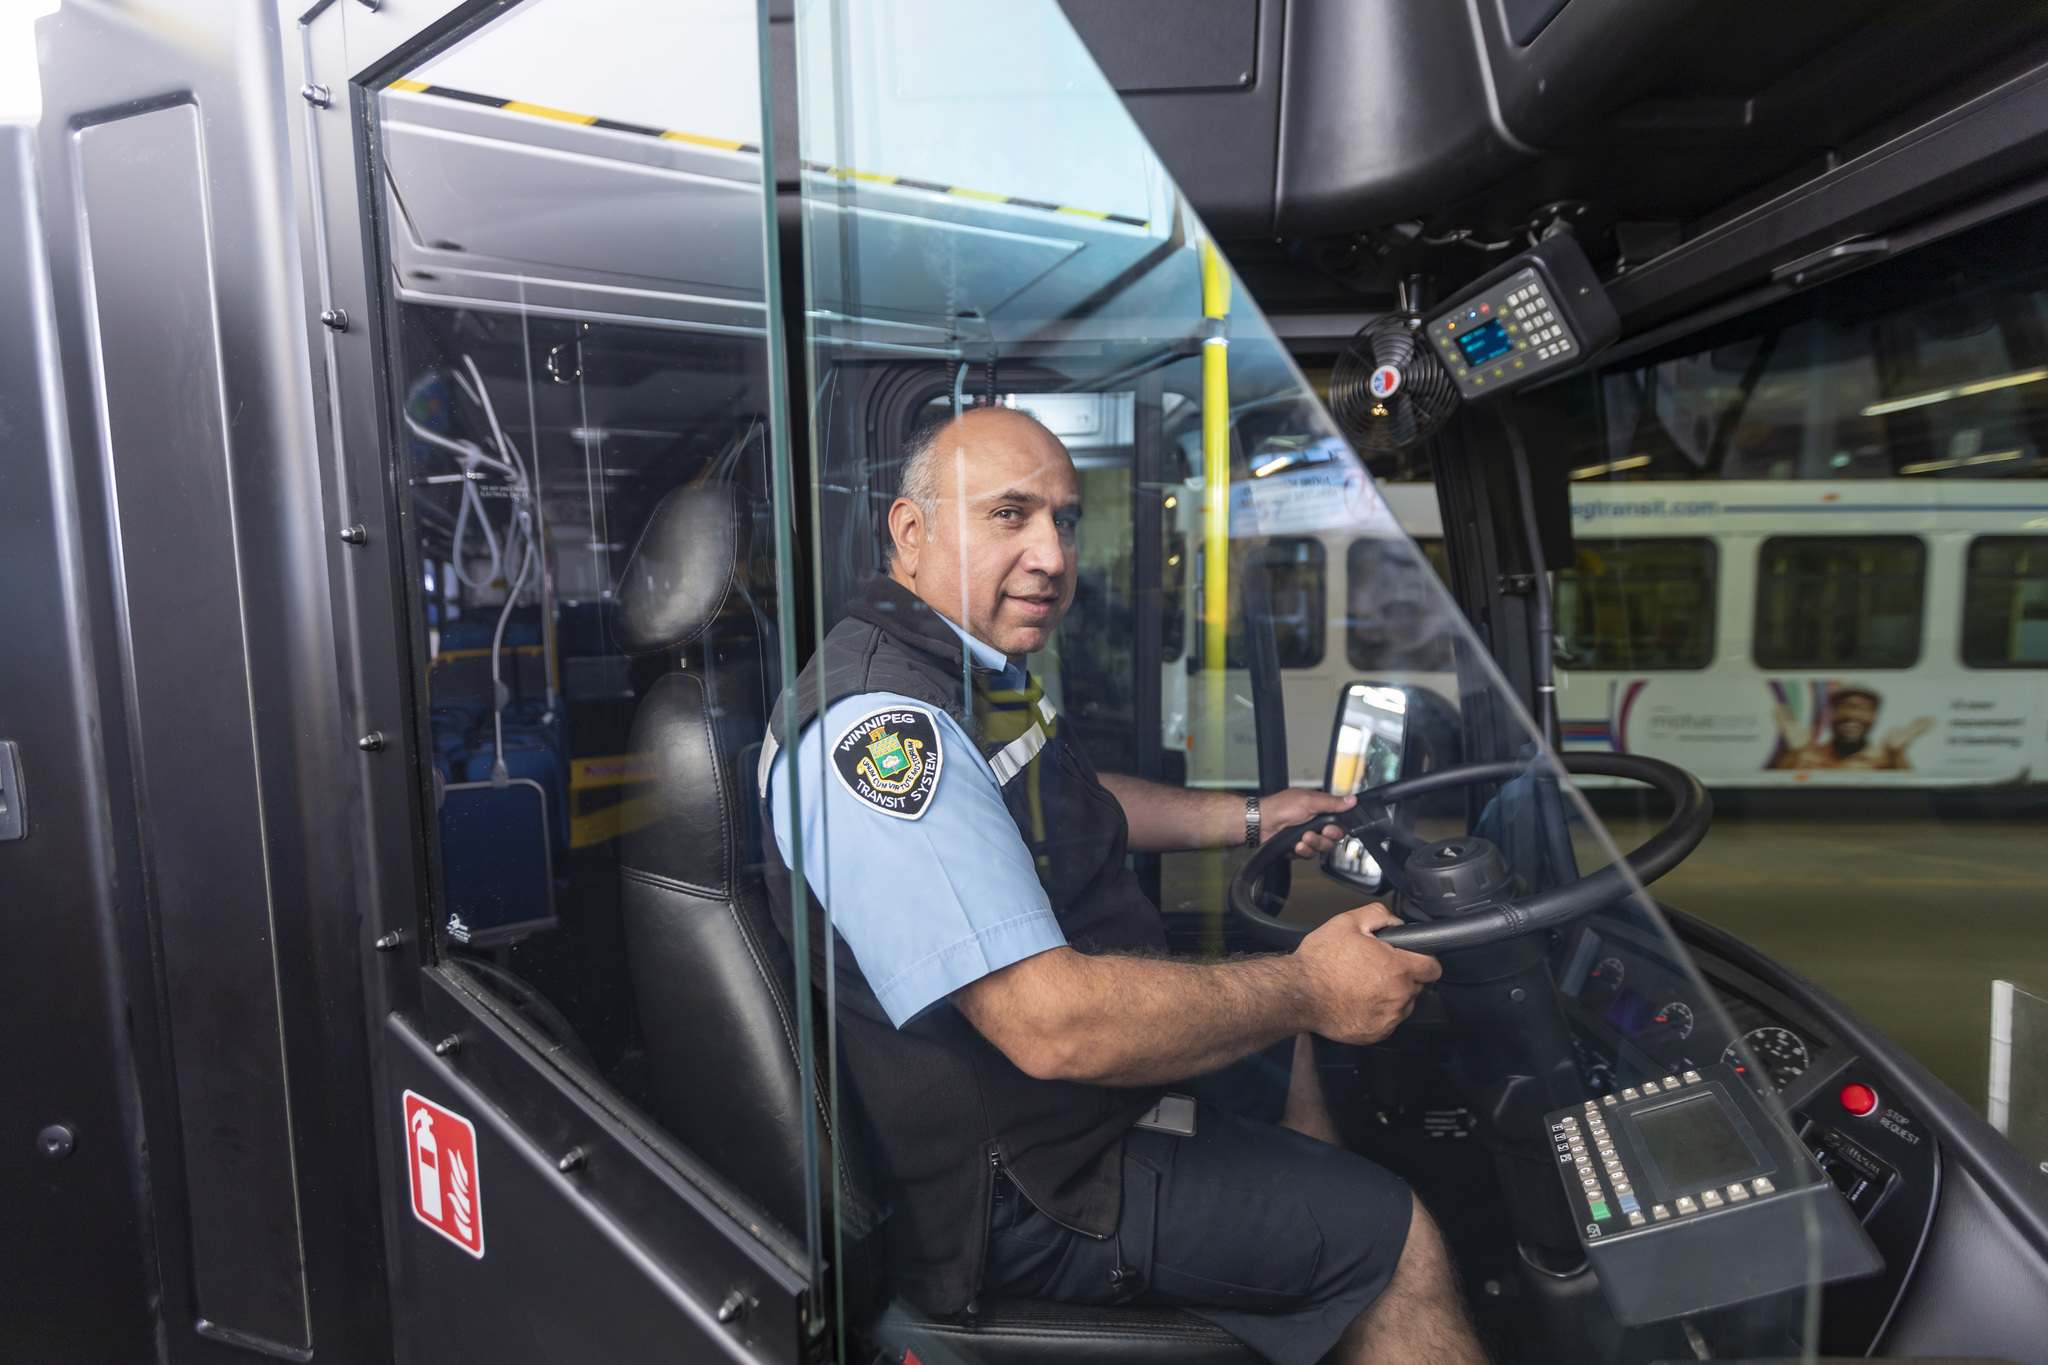 Transit driver Angel Valazquez sits in a bus with a new safety shield during a press conference Thursday. Two contractors submitted acceptable designs and the winner was selected by drivers during a nine-month test period. (Sasha Sefter / Winnipeg Free Press)</p>